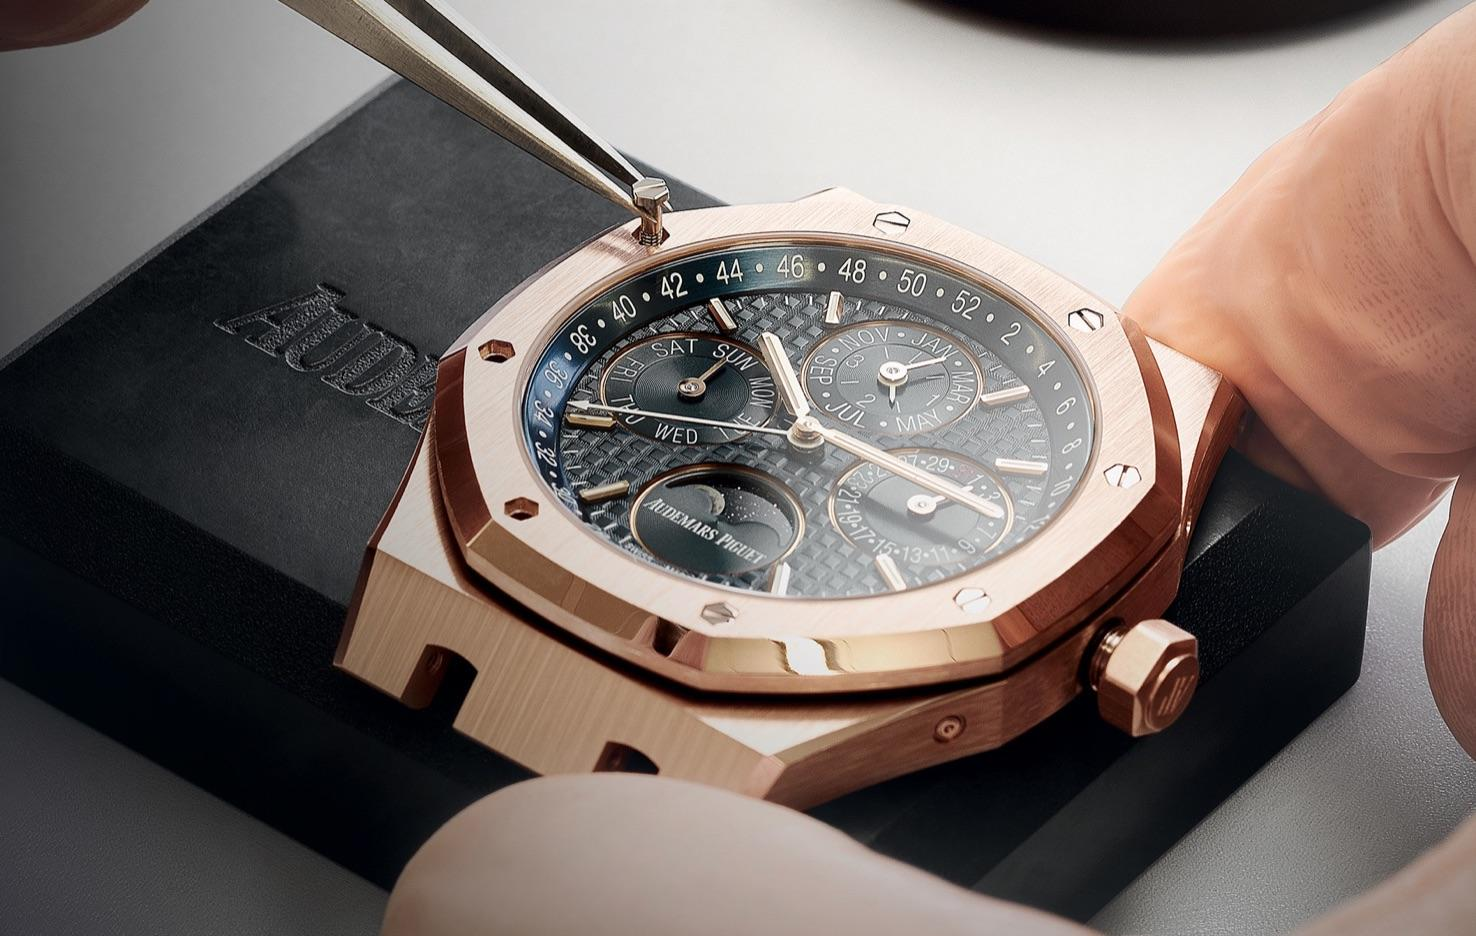 Top 15 Swiss Watch Brands Of All Time - The Watch Company